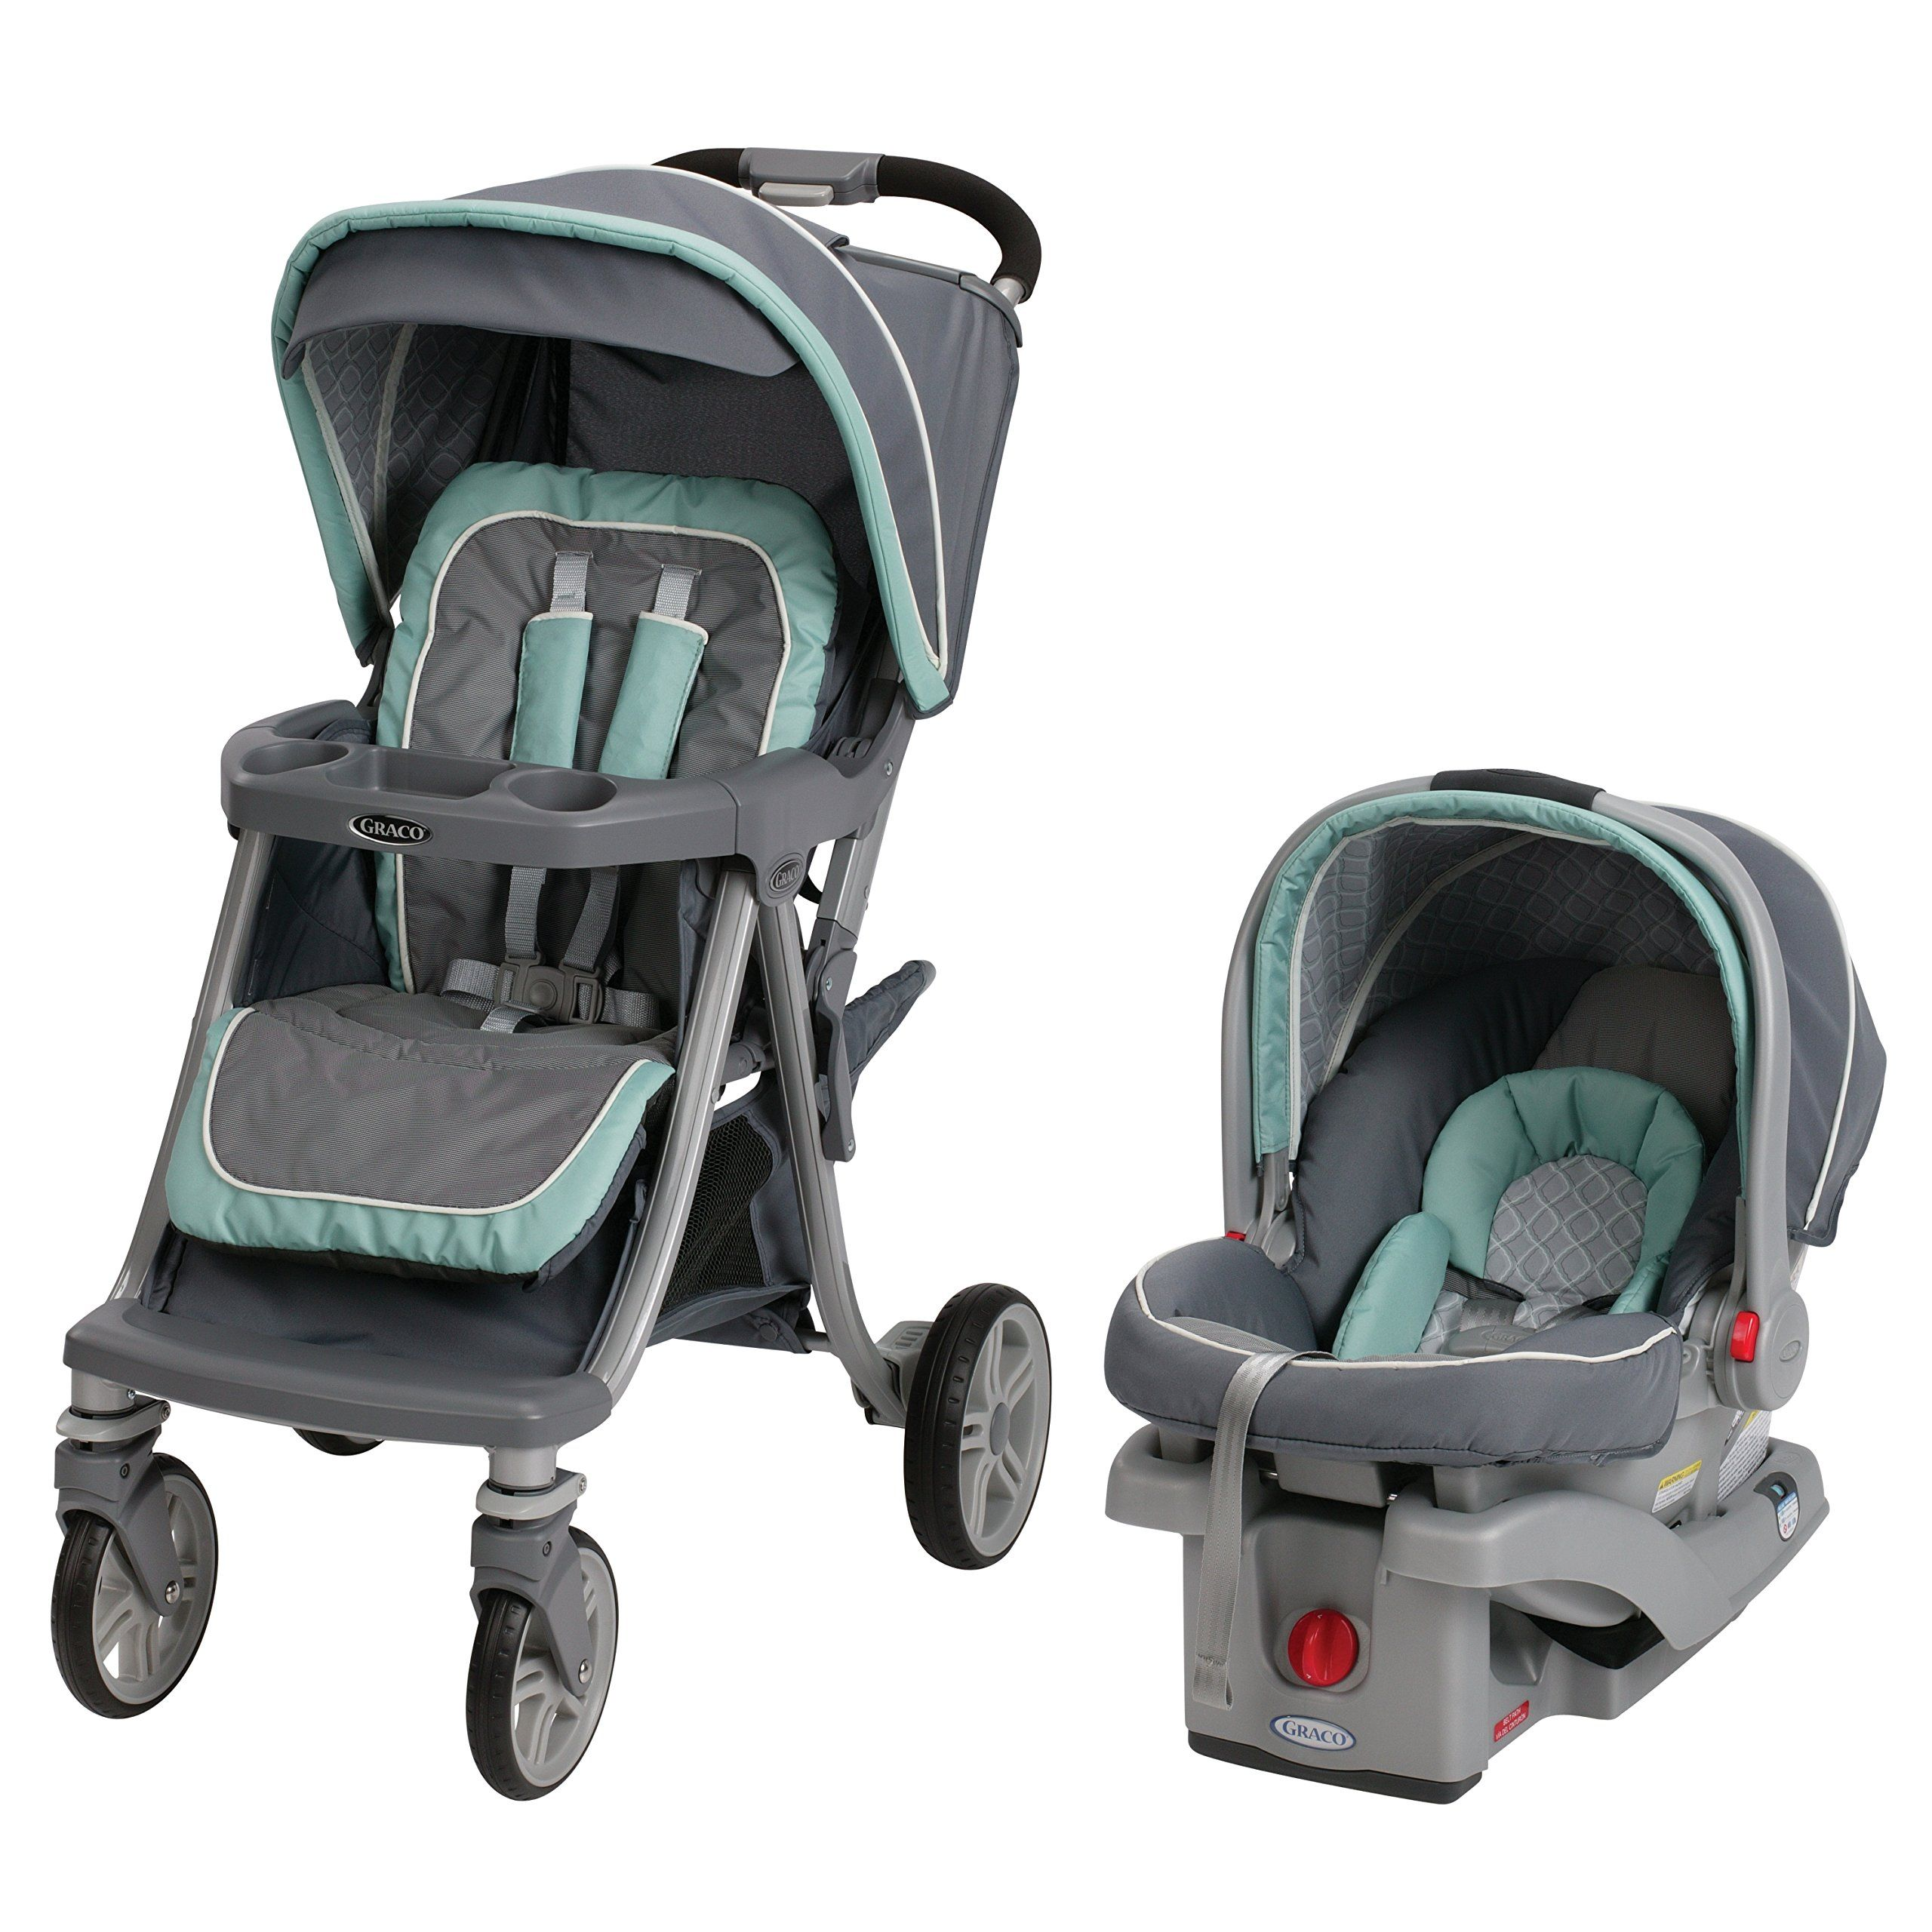 Graco Soho Travel System SnugRide Connect 30 Manor See more at